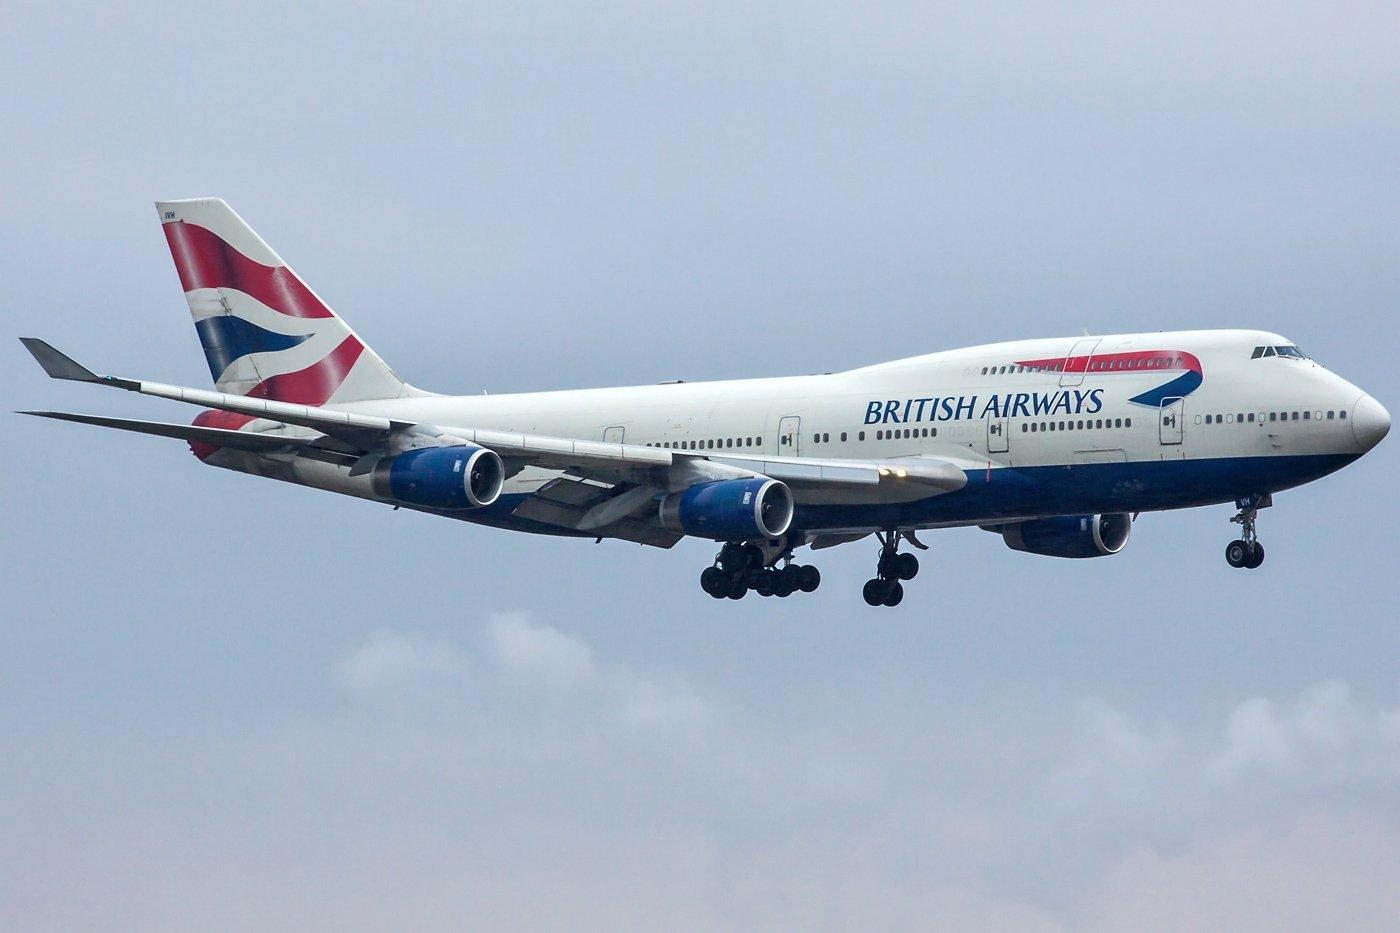 British Airways Boeing 747-436 G-CIVH